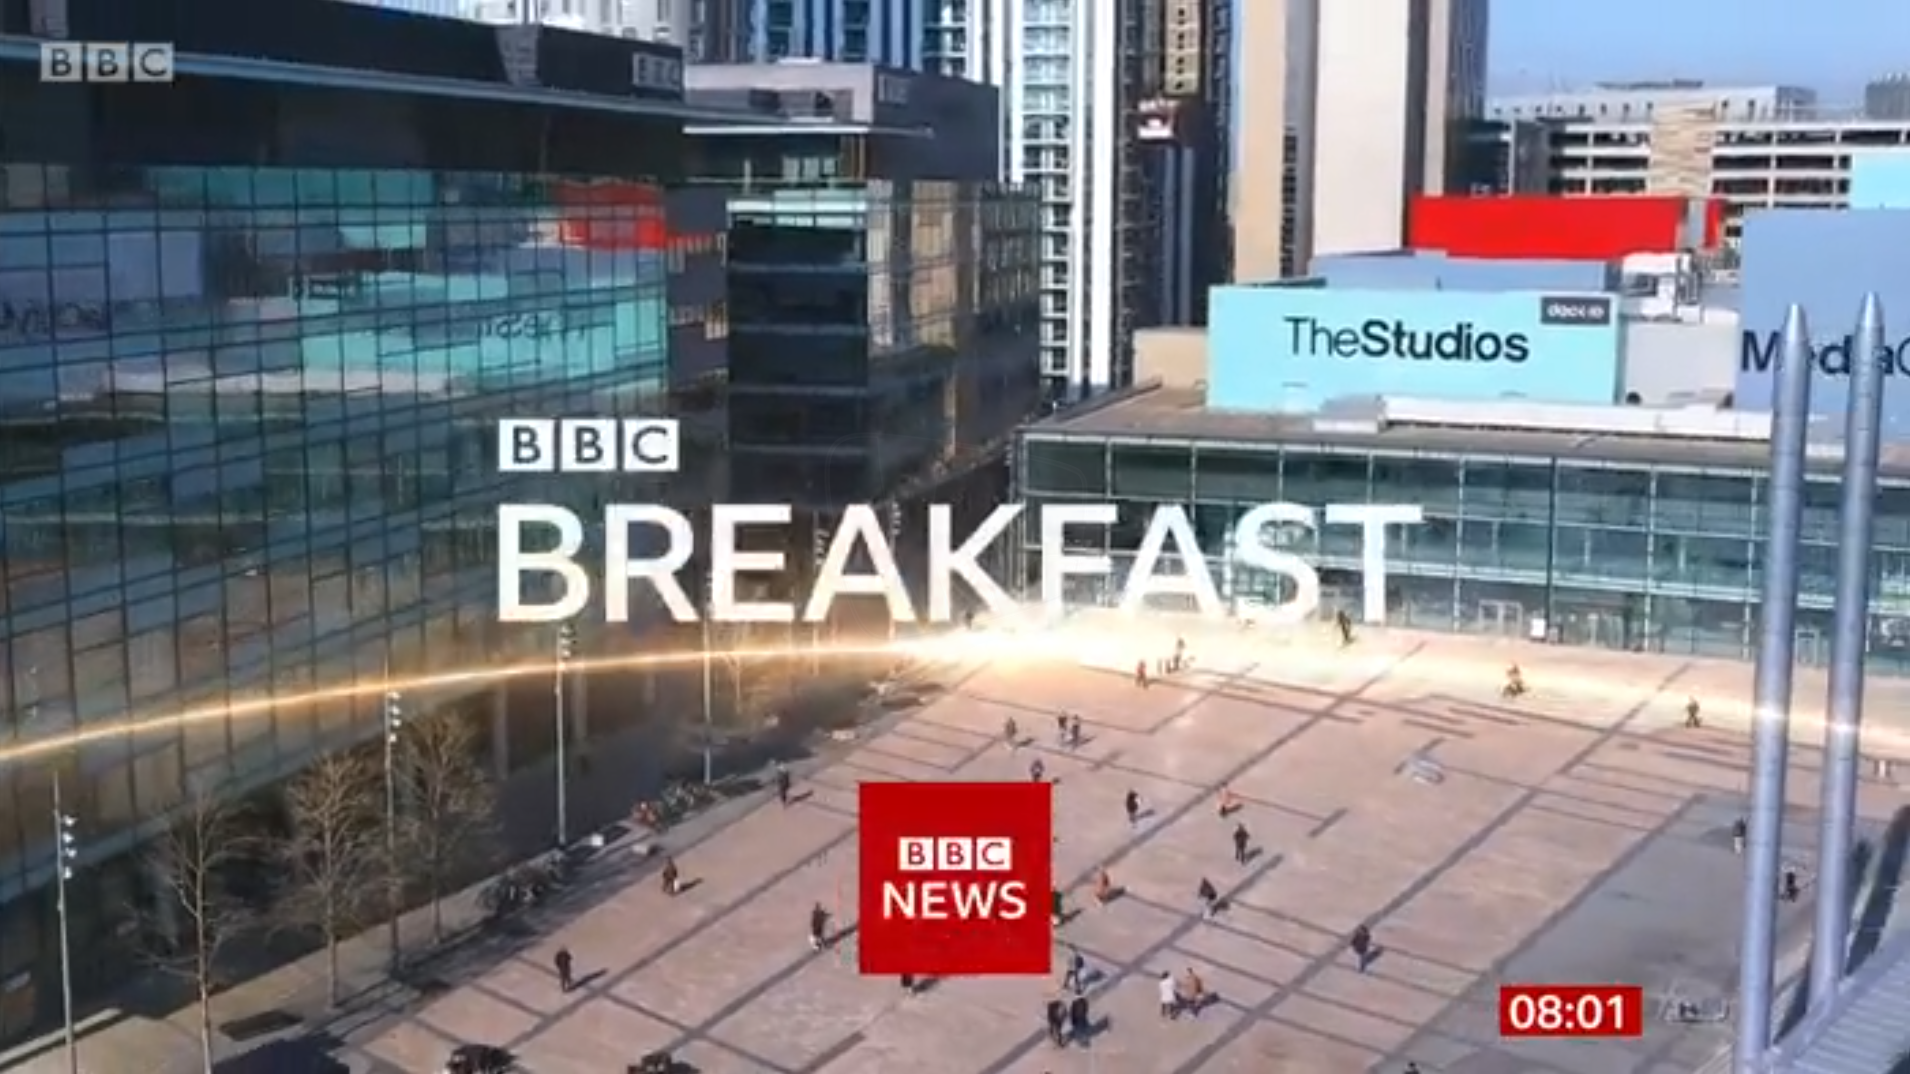 PICTURED: BBC Breakfast opening titles.